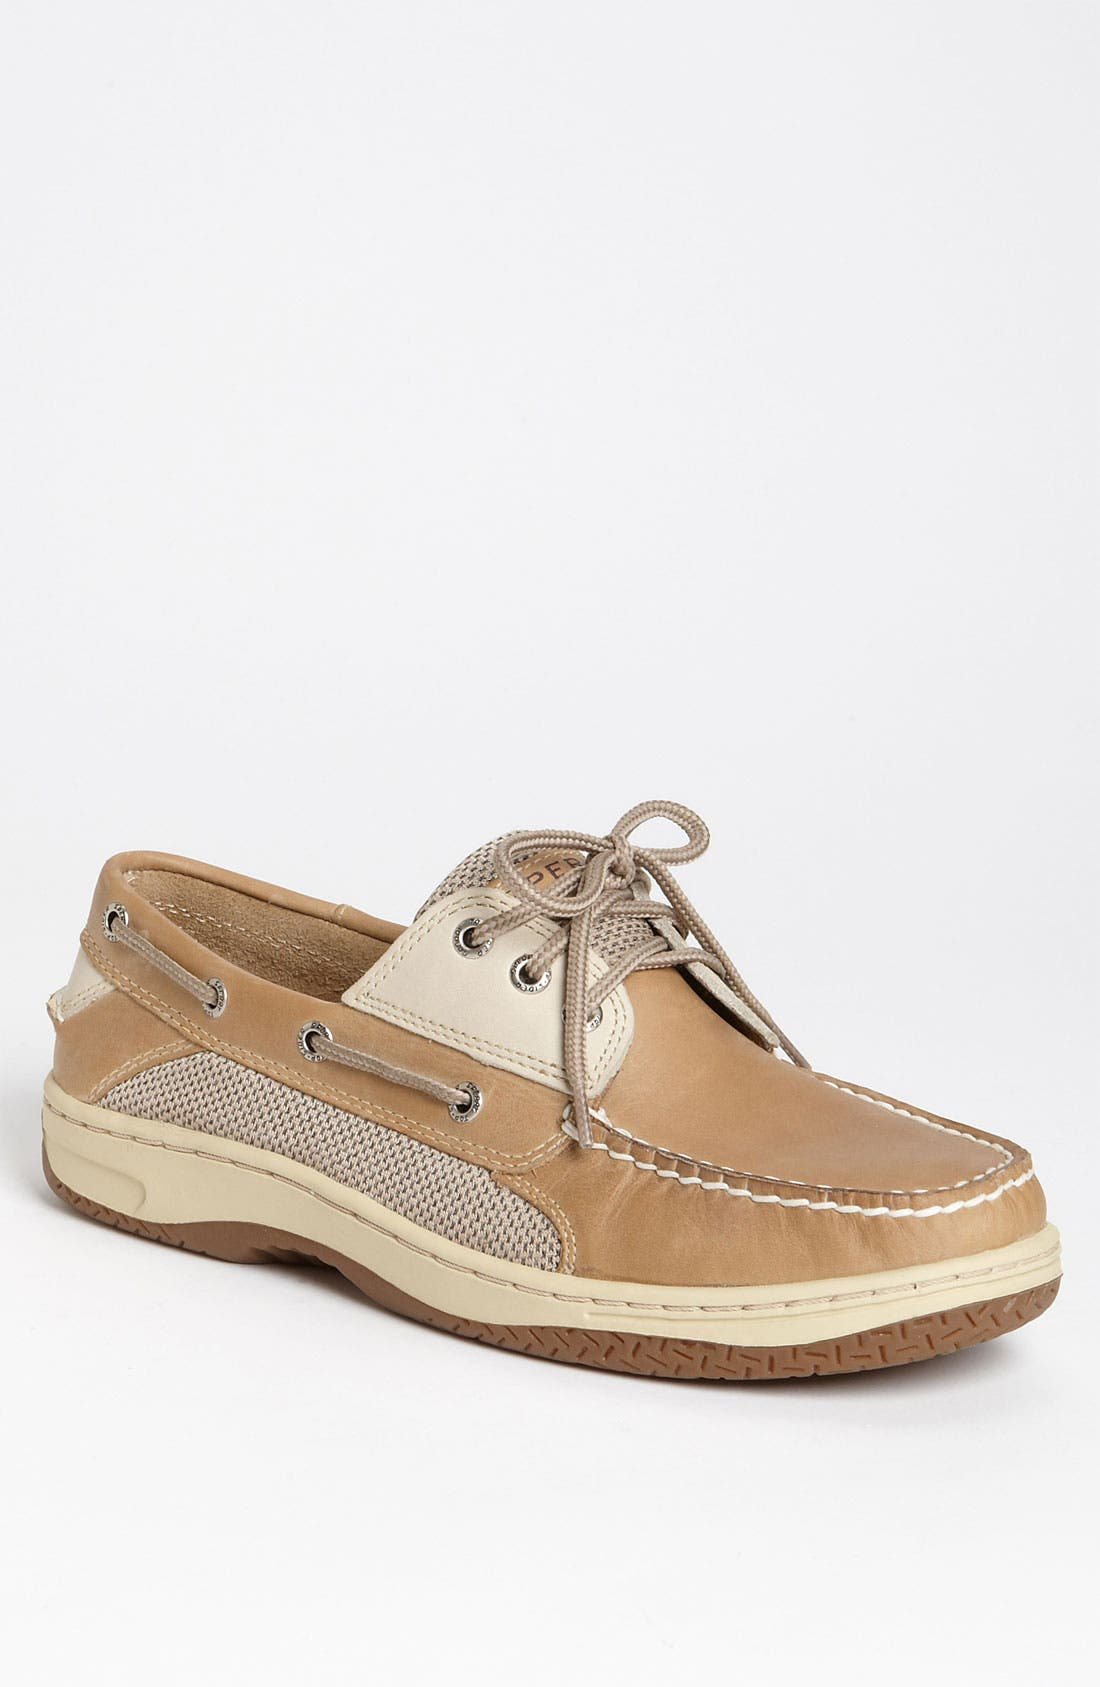 Main Image - Sperry 'Billfish' Boat Shoe (Men)